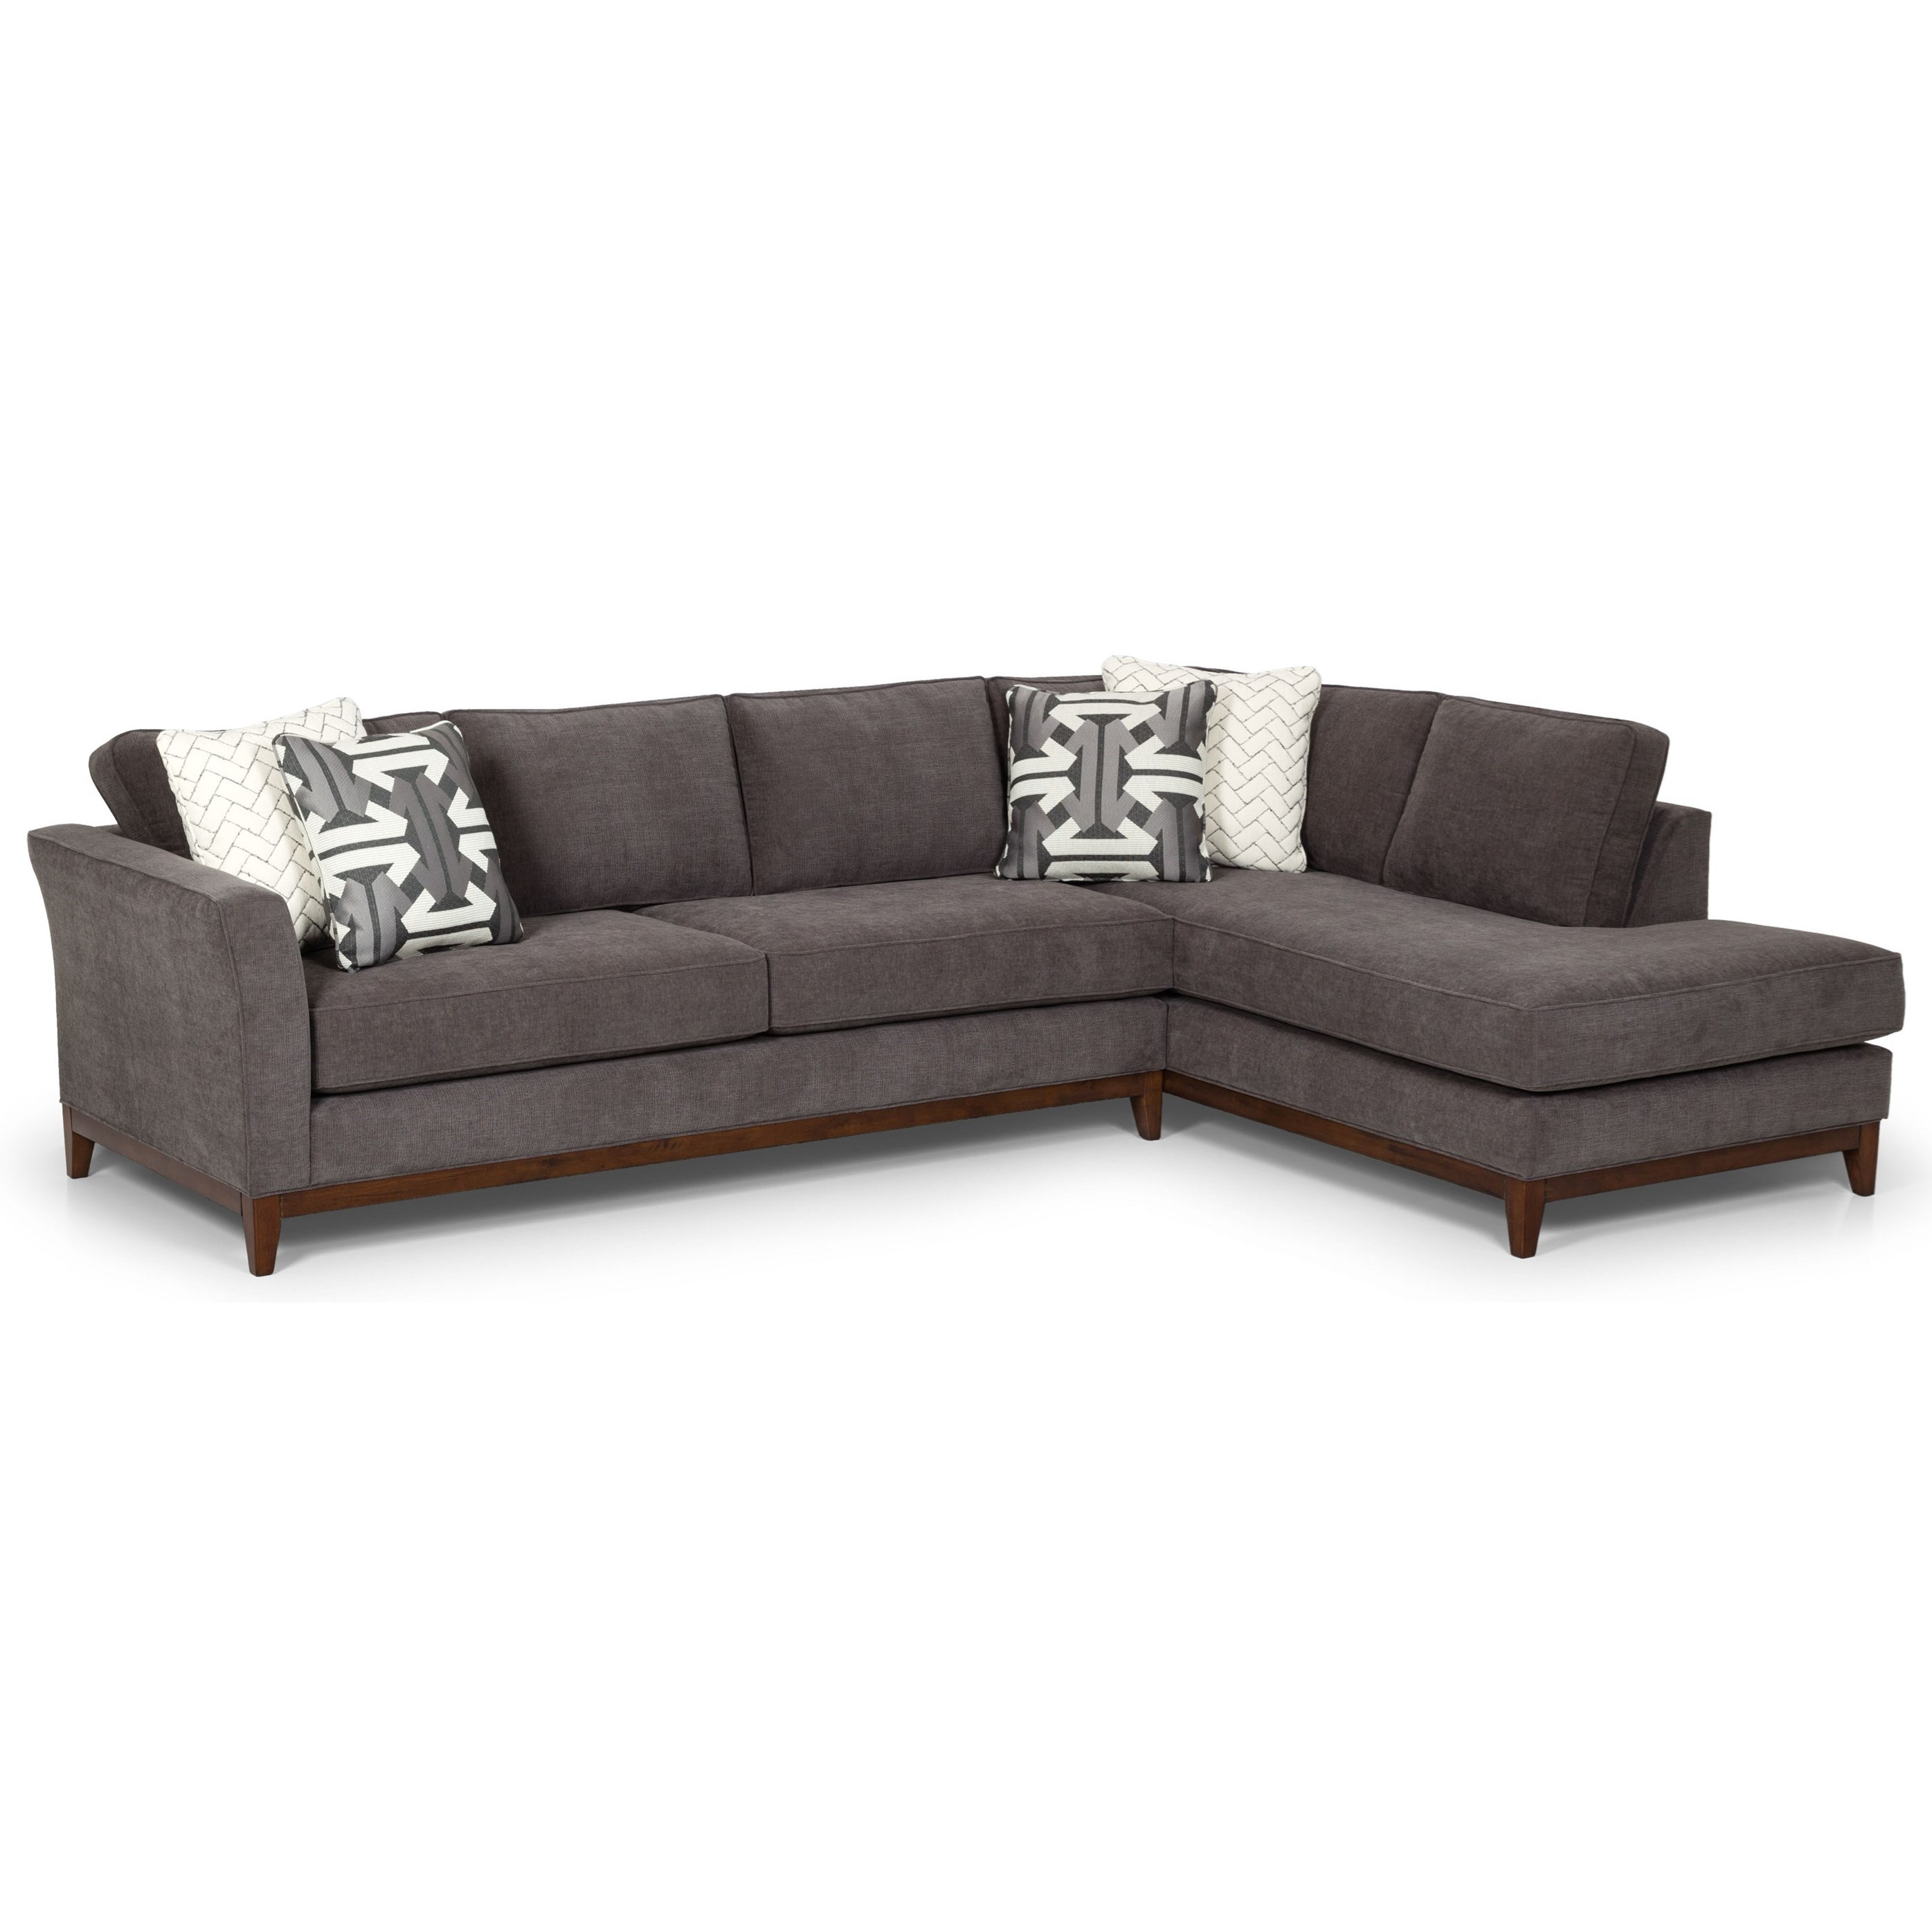 2 piece sectional with oversized chaise